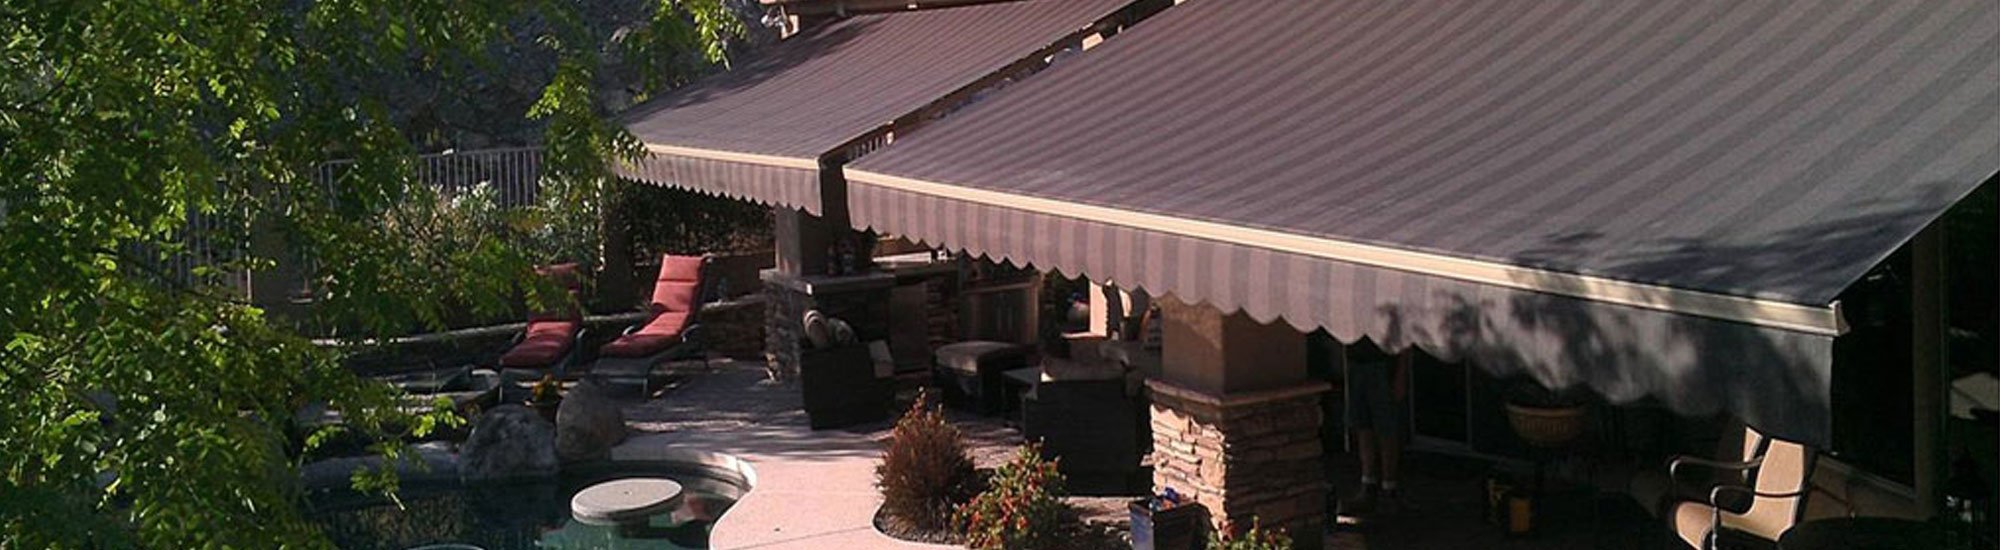 Awnings And Shades From Sunesta